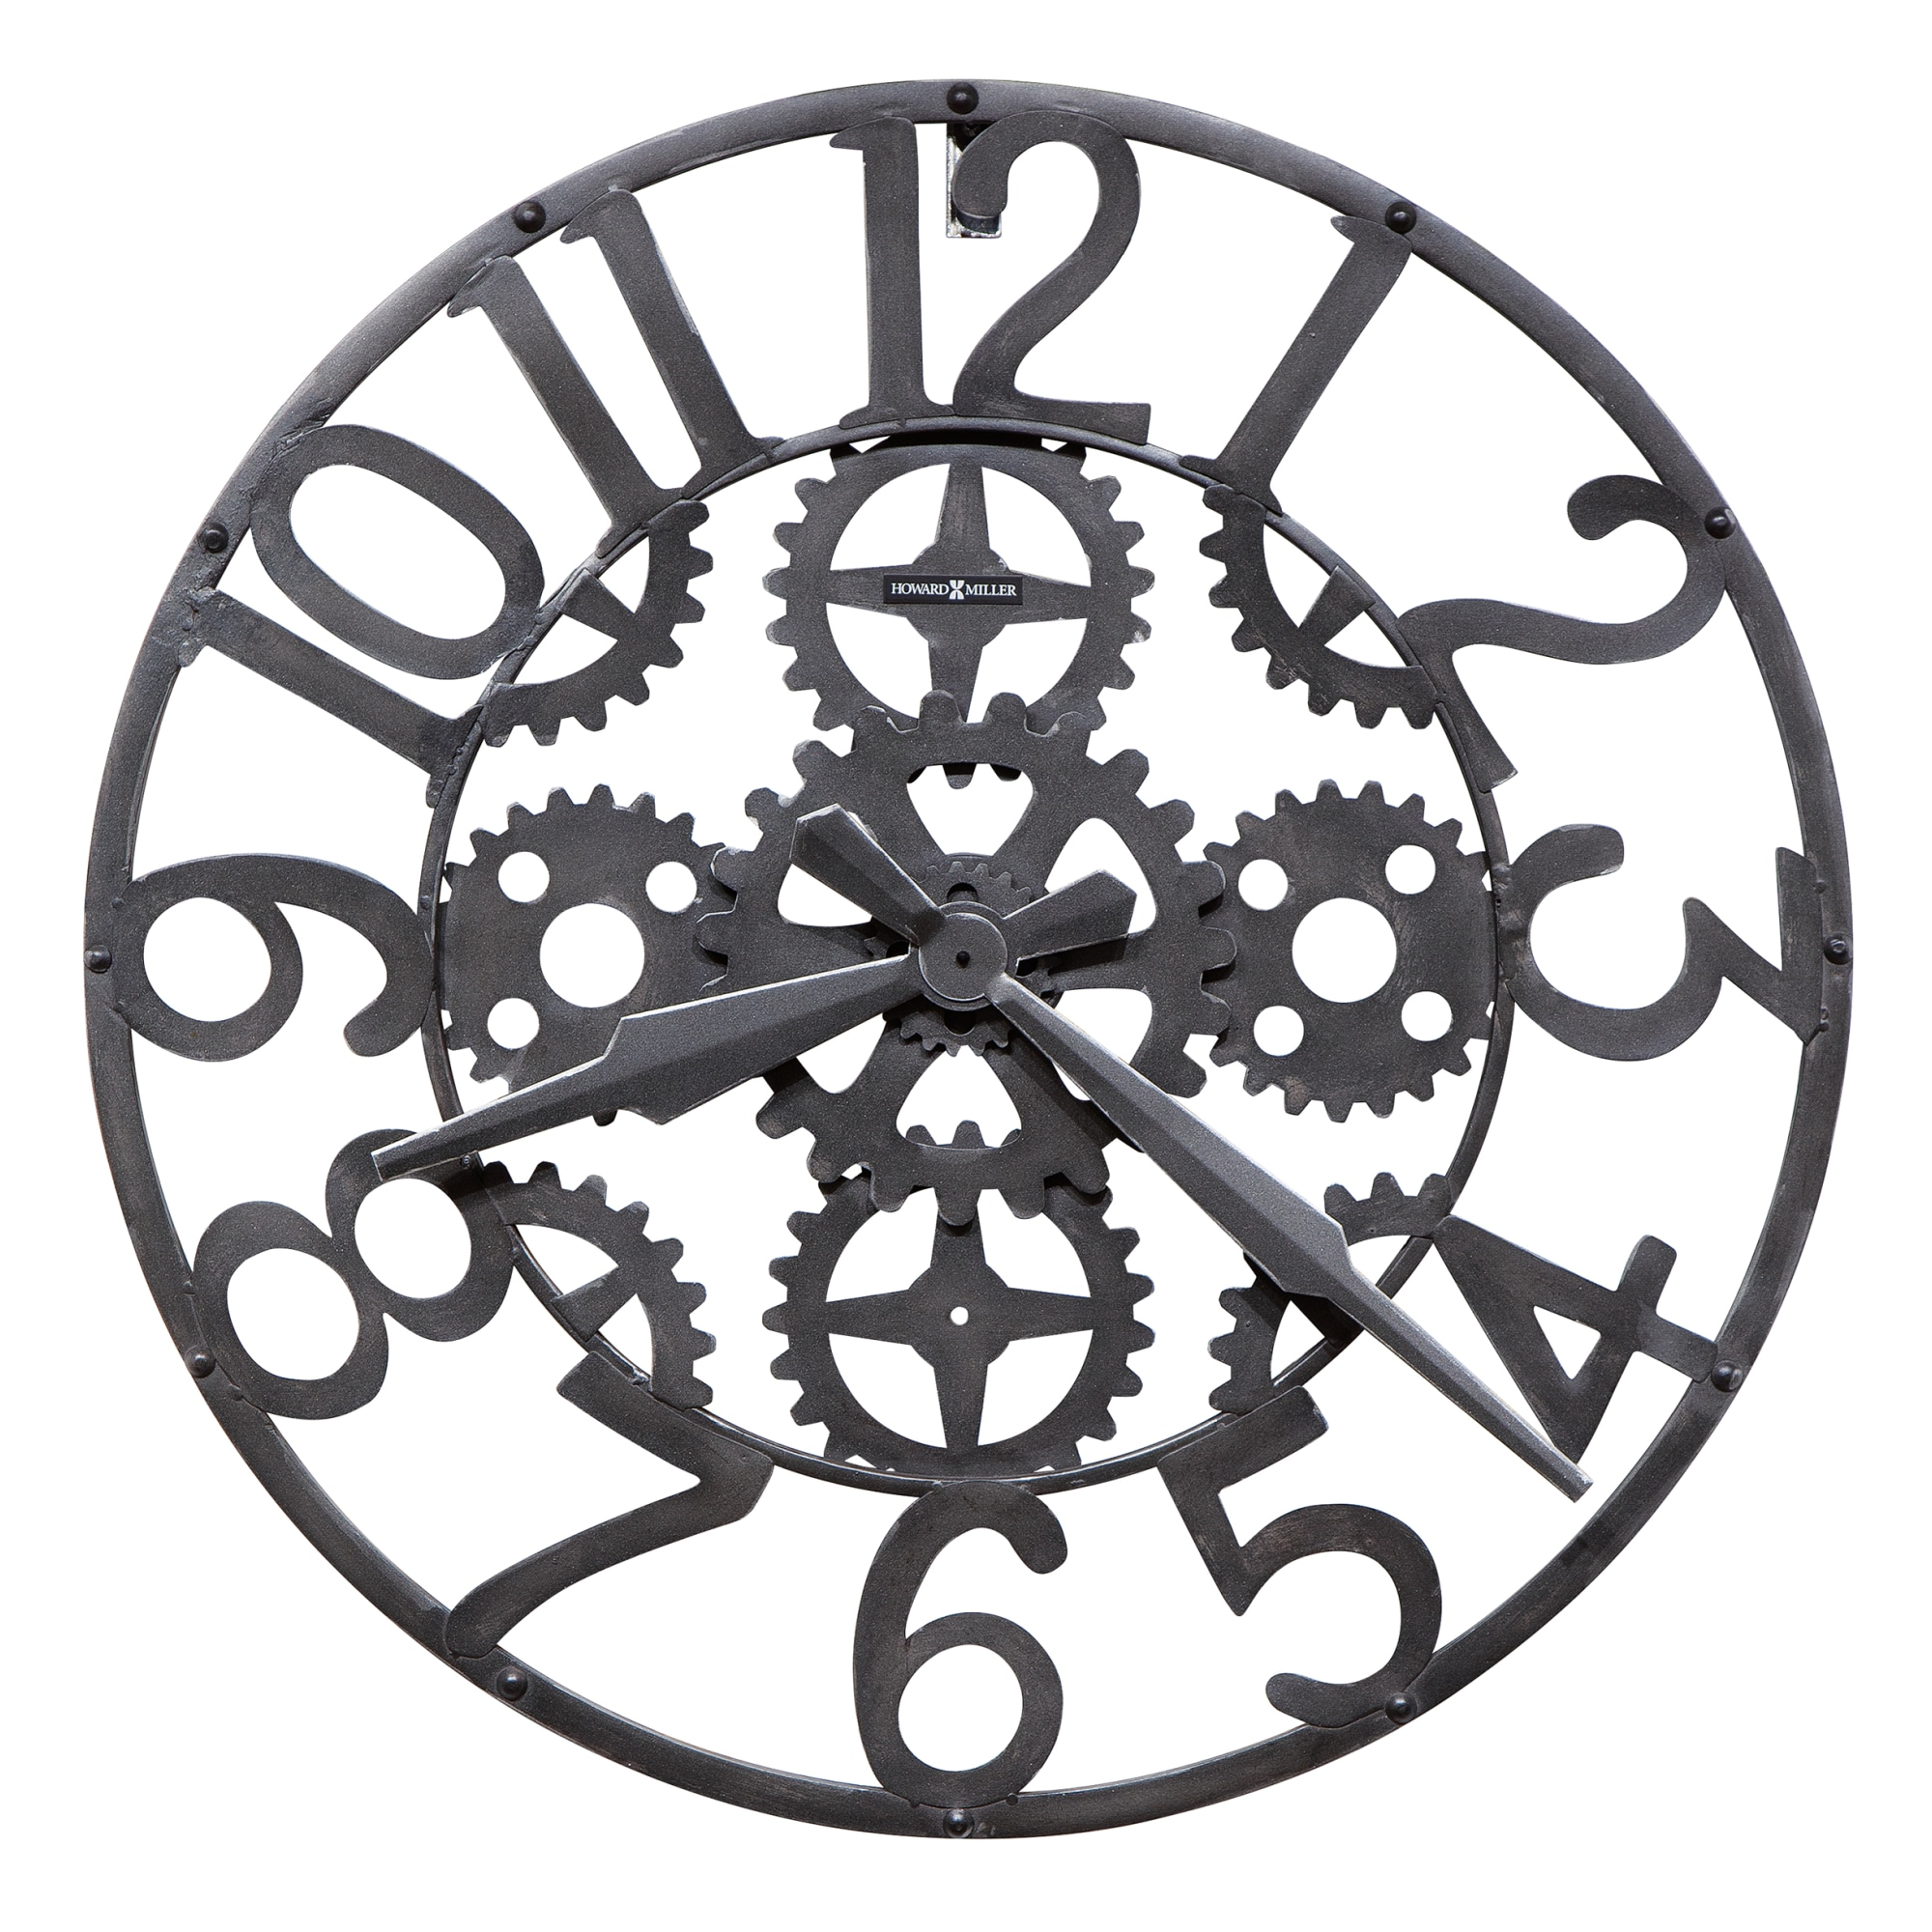 Image for 625-698 Iron Works Wall Clock from Howard Miller Official Website